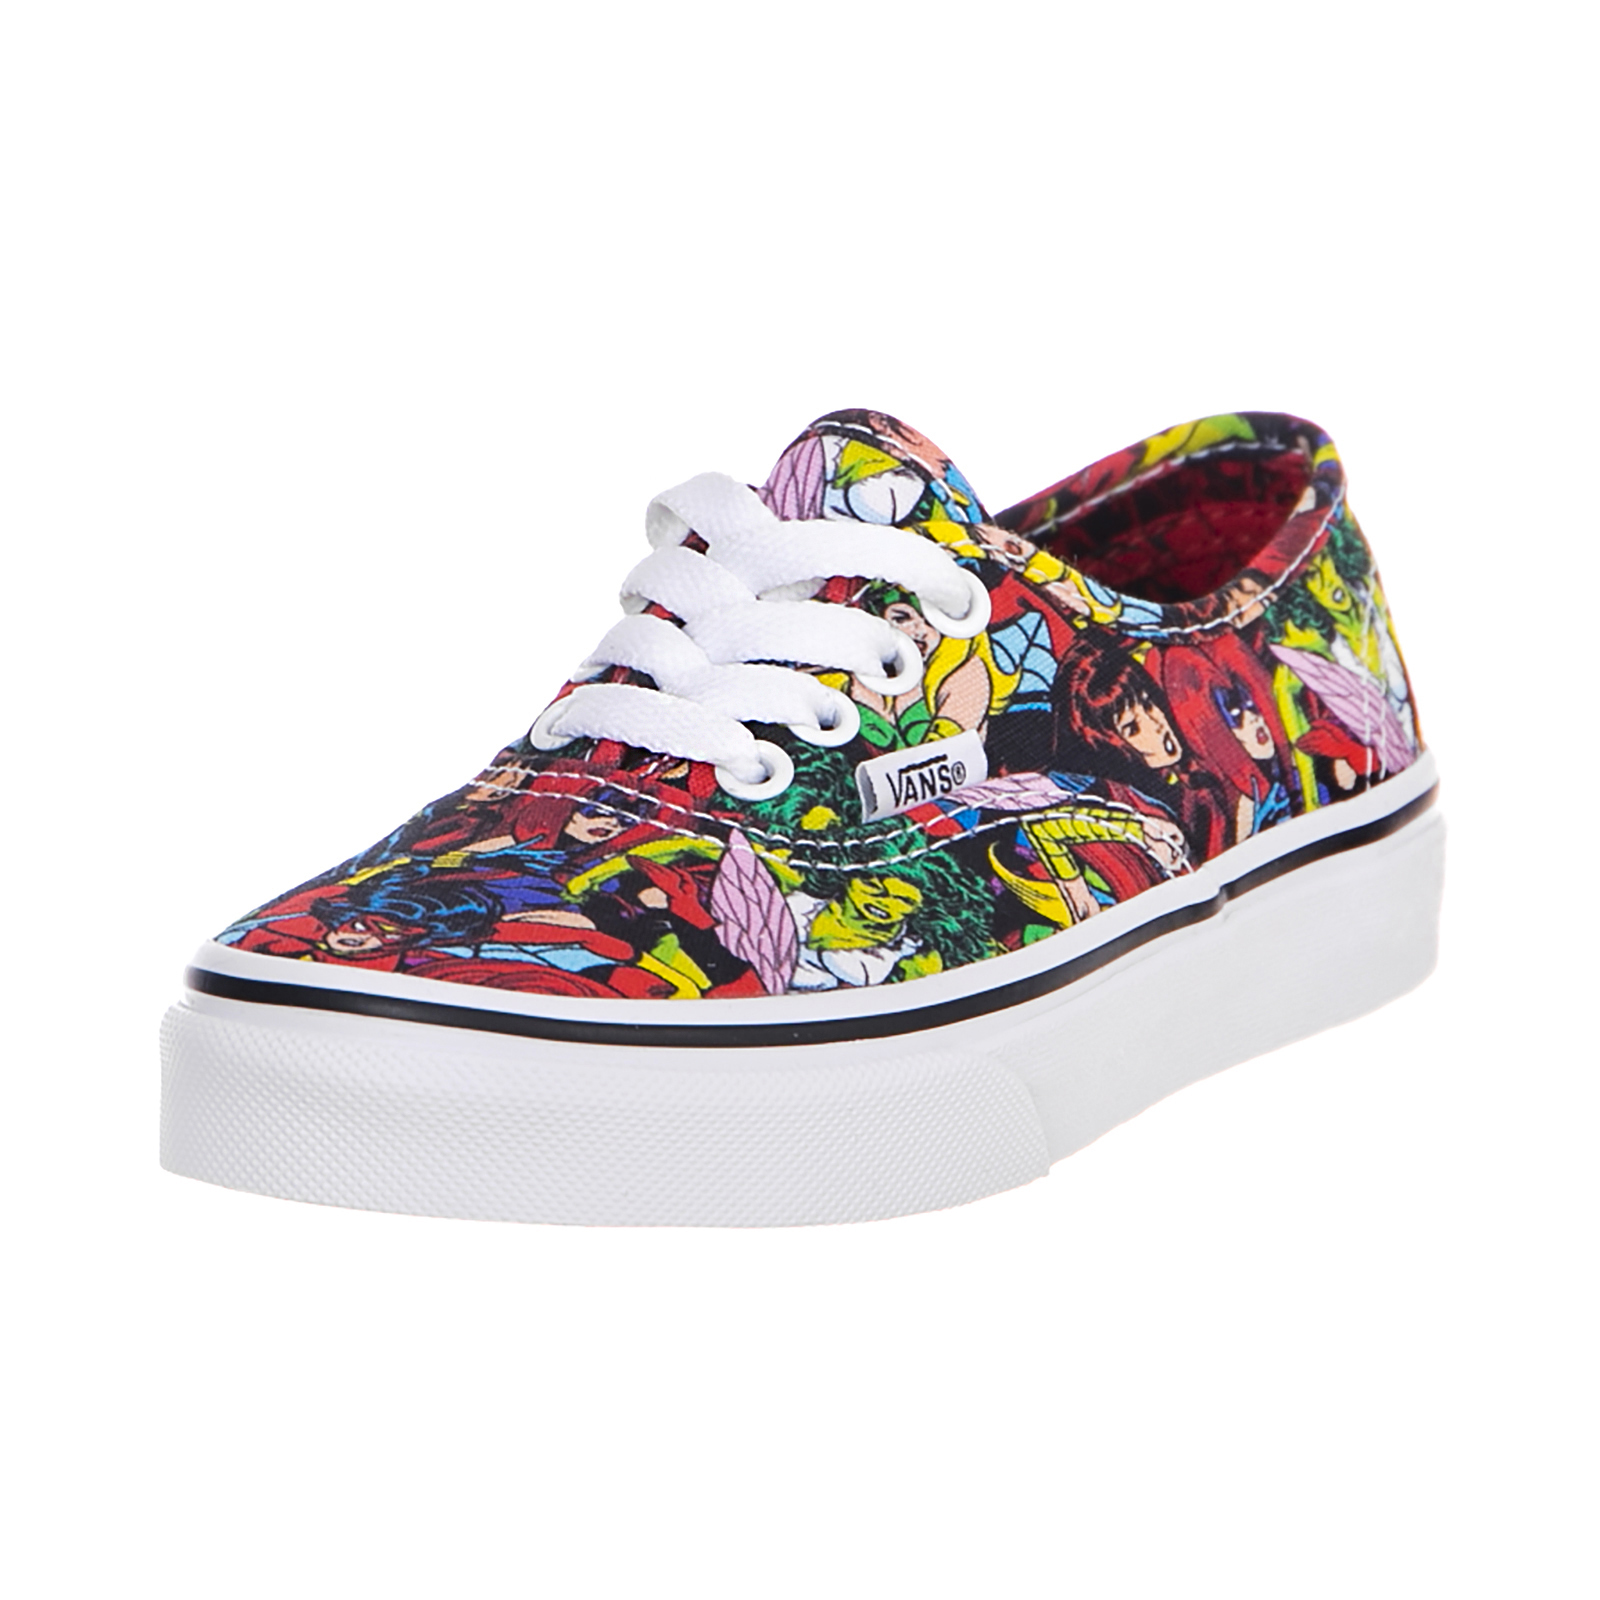 f020fcc8579823 Vans Sneakers Uy Authentic (Marvel) Mul Multicolor